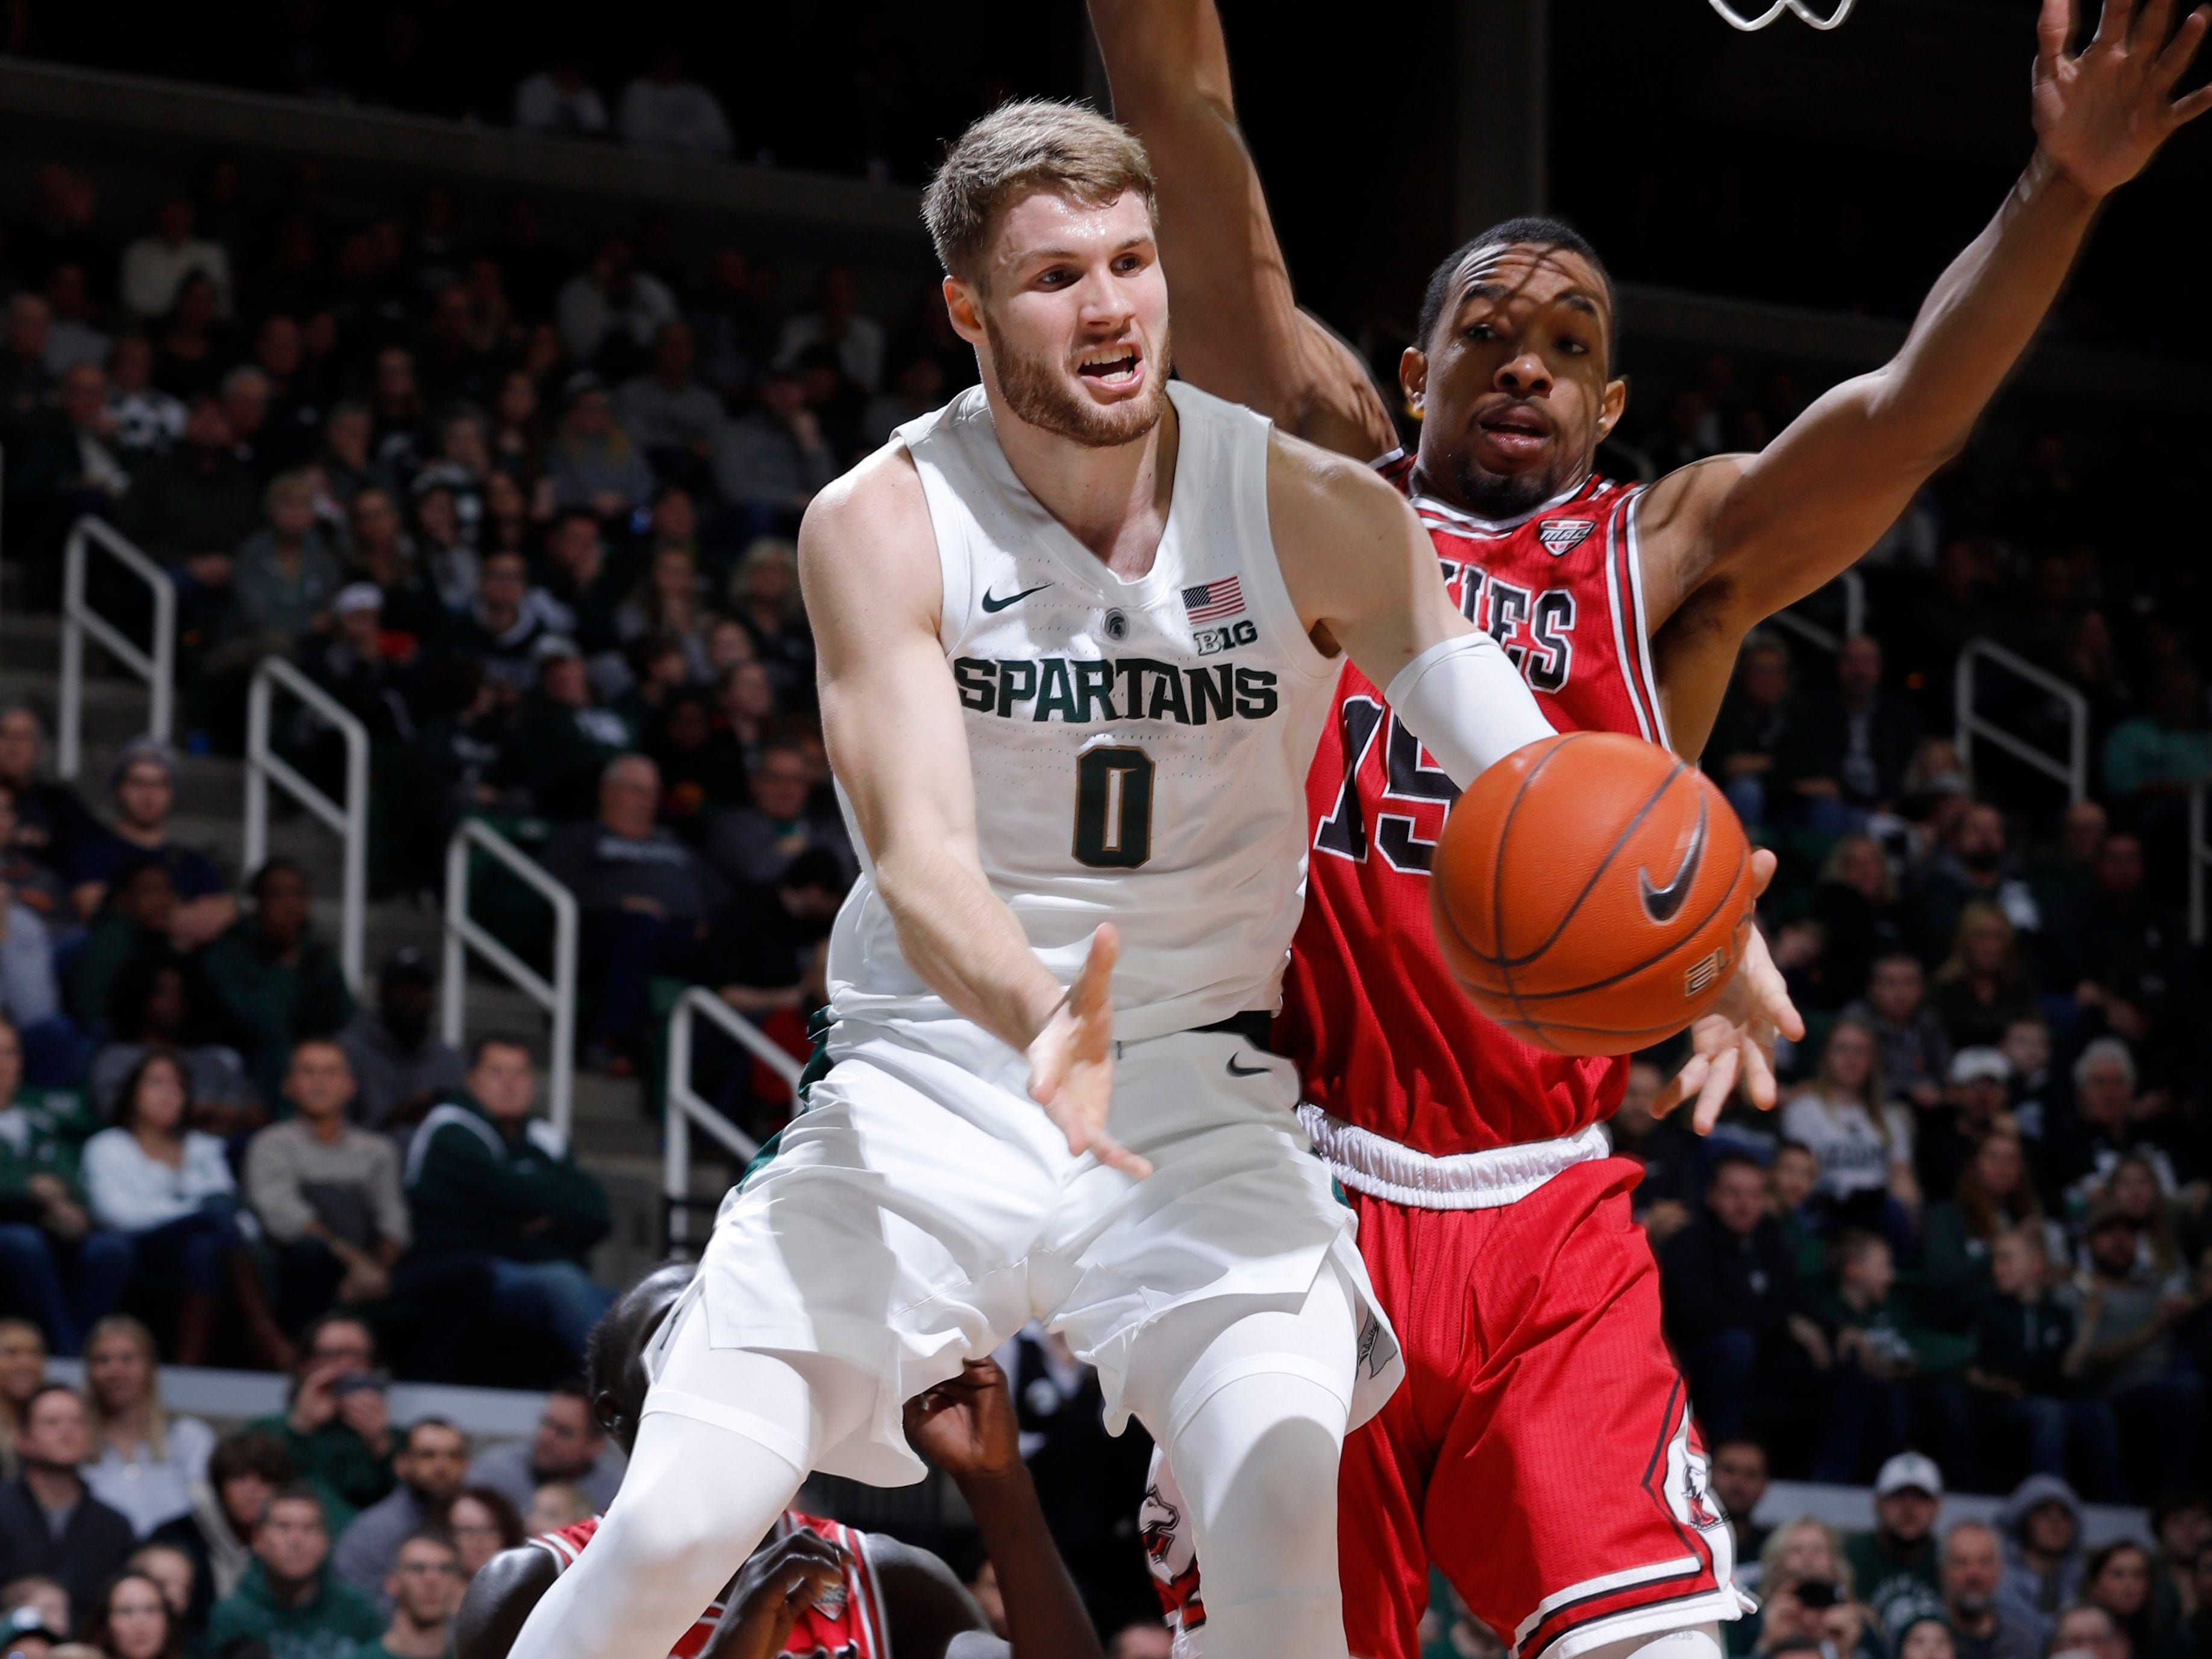 Michigan State's Kyle Ahrens (0) dishes off under the basket against Northern Illinois' Jaylen Key, Saturday, Dec. 29, 2018, in East Lansing, Mich.